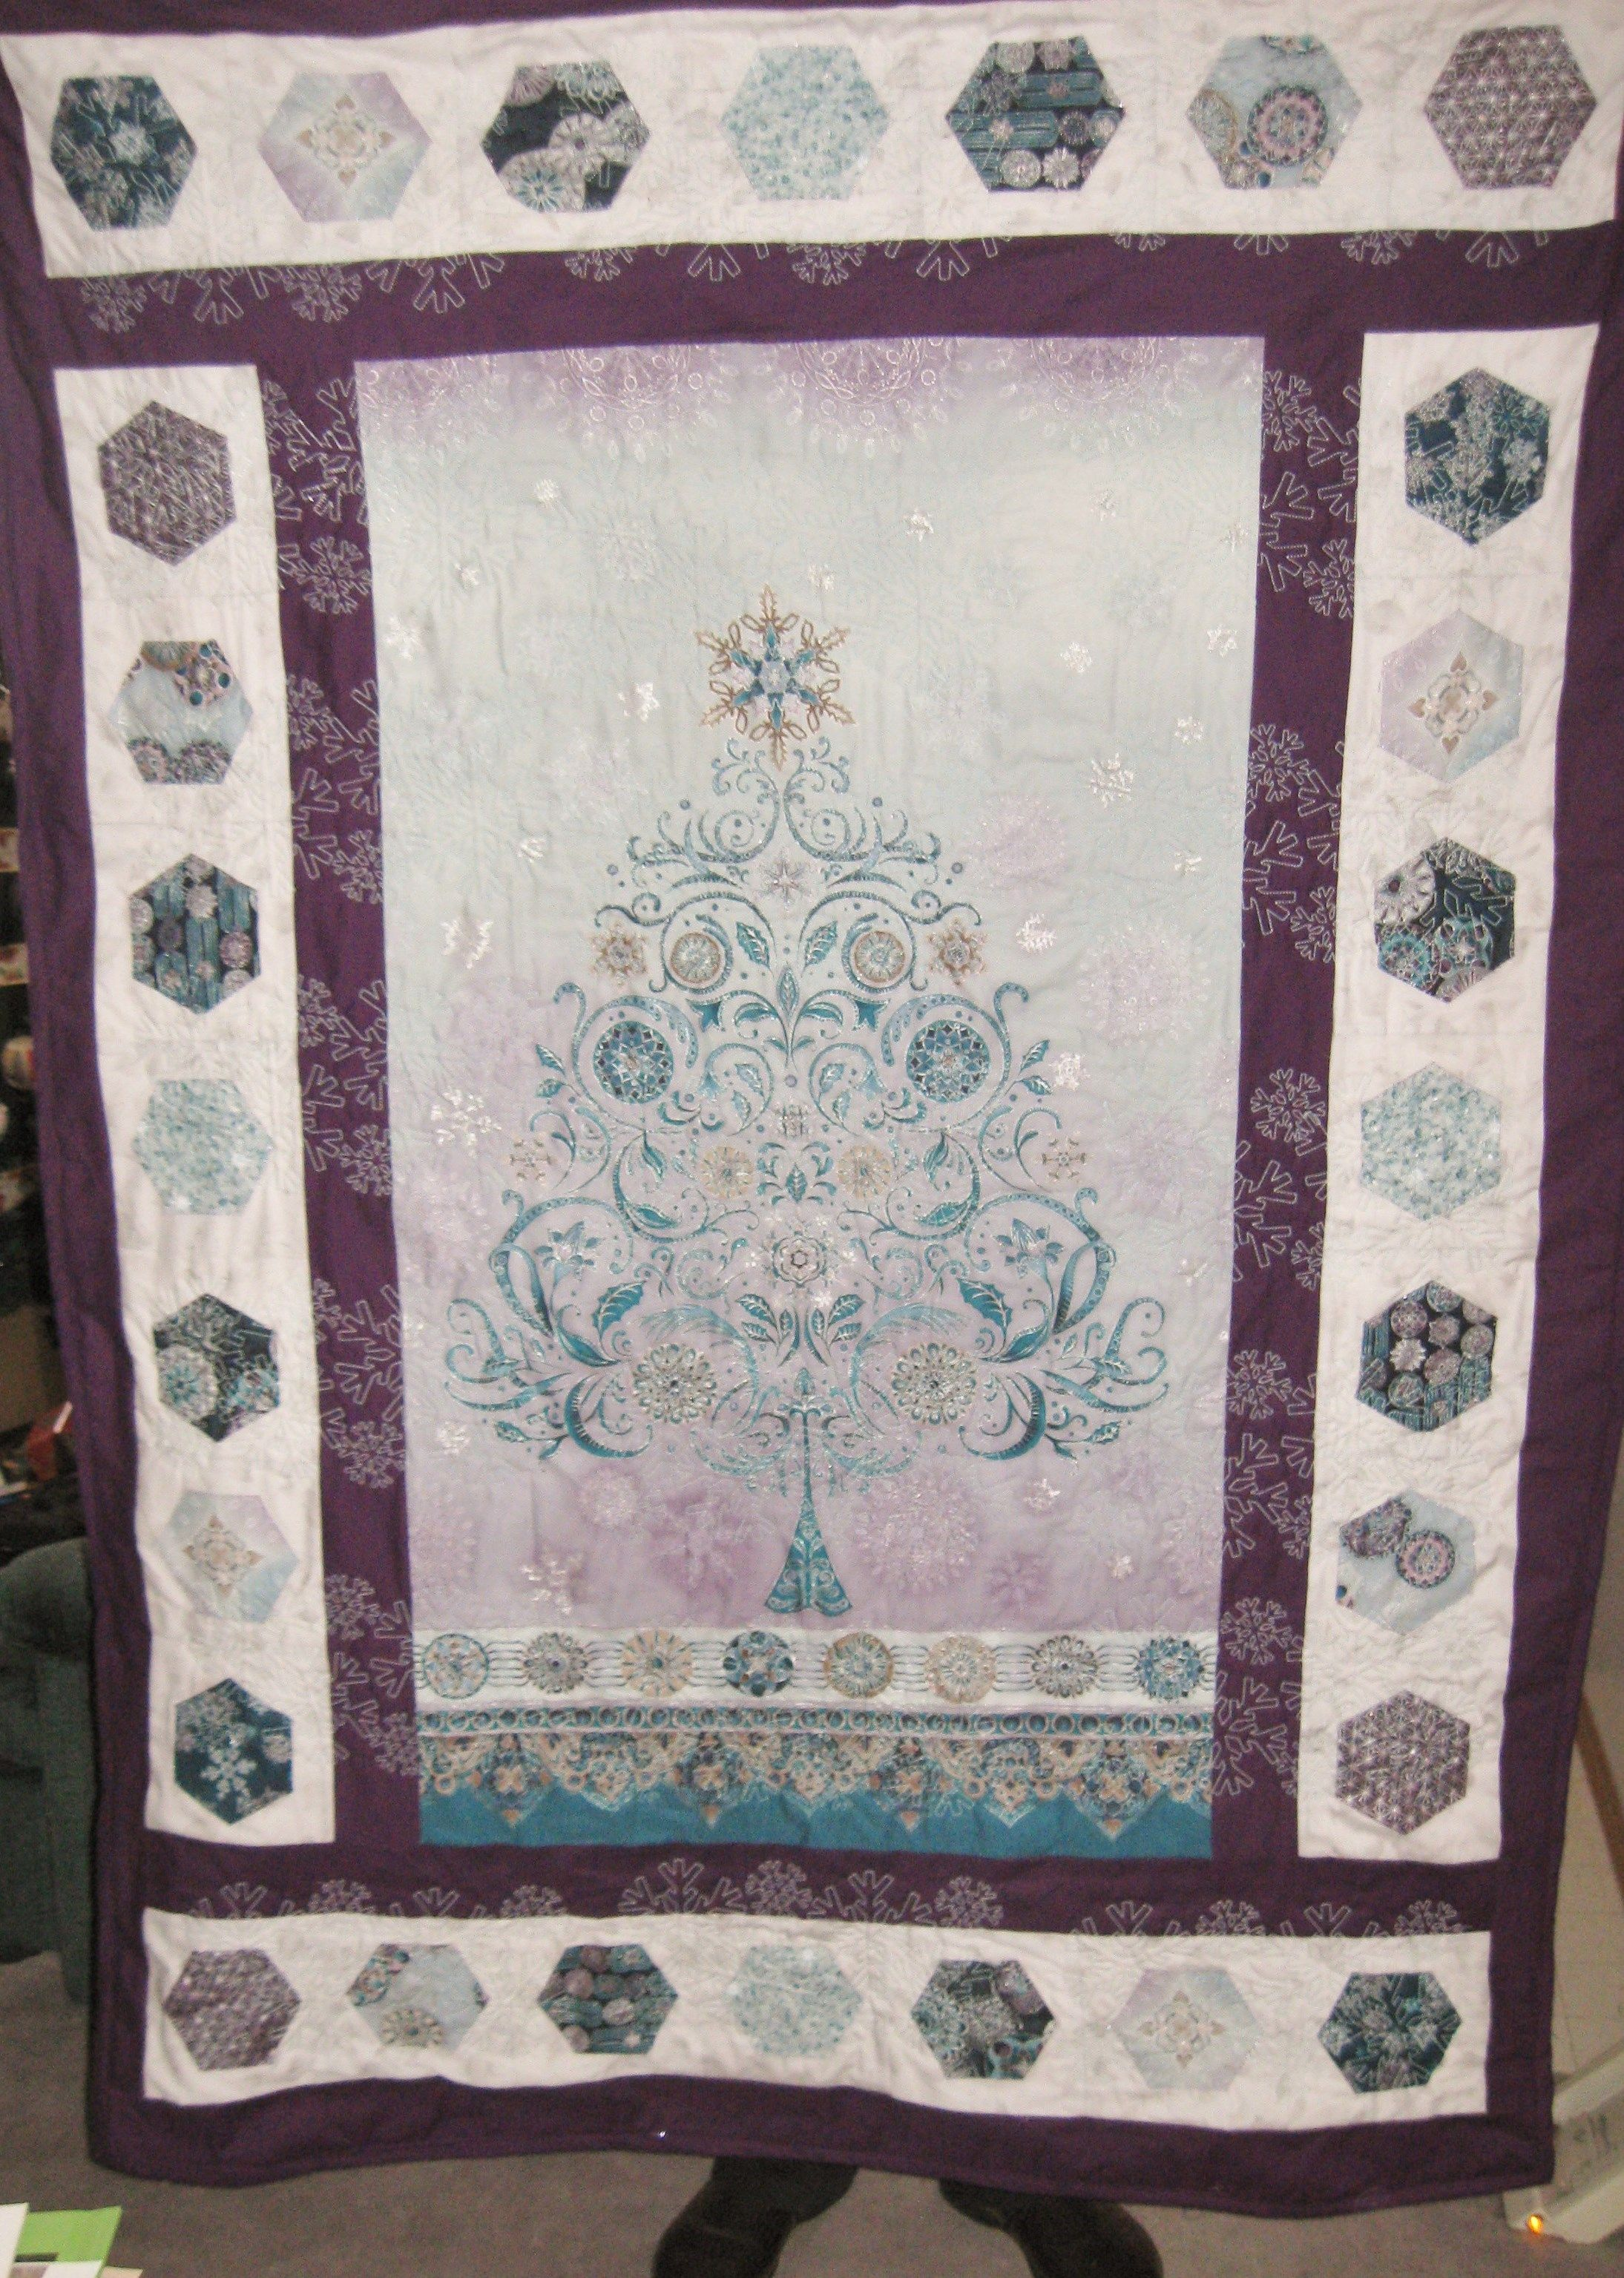 Quilt donated to Airdrie Day Support Program for Silent Auction.  Machine embroidered with white snowflakes.